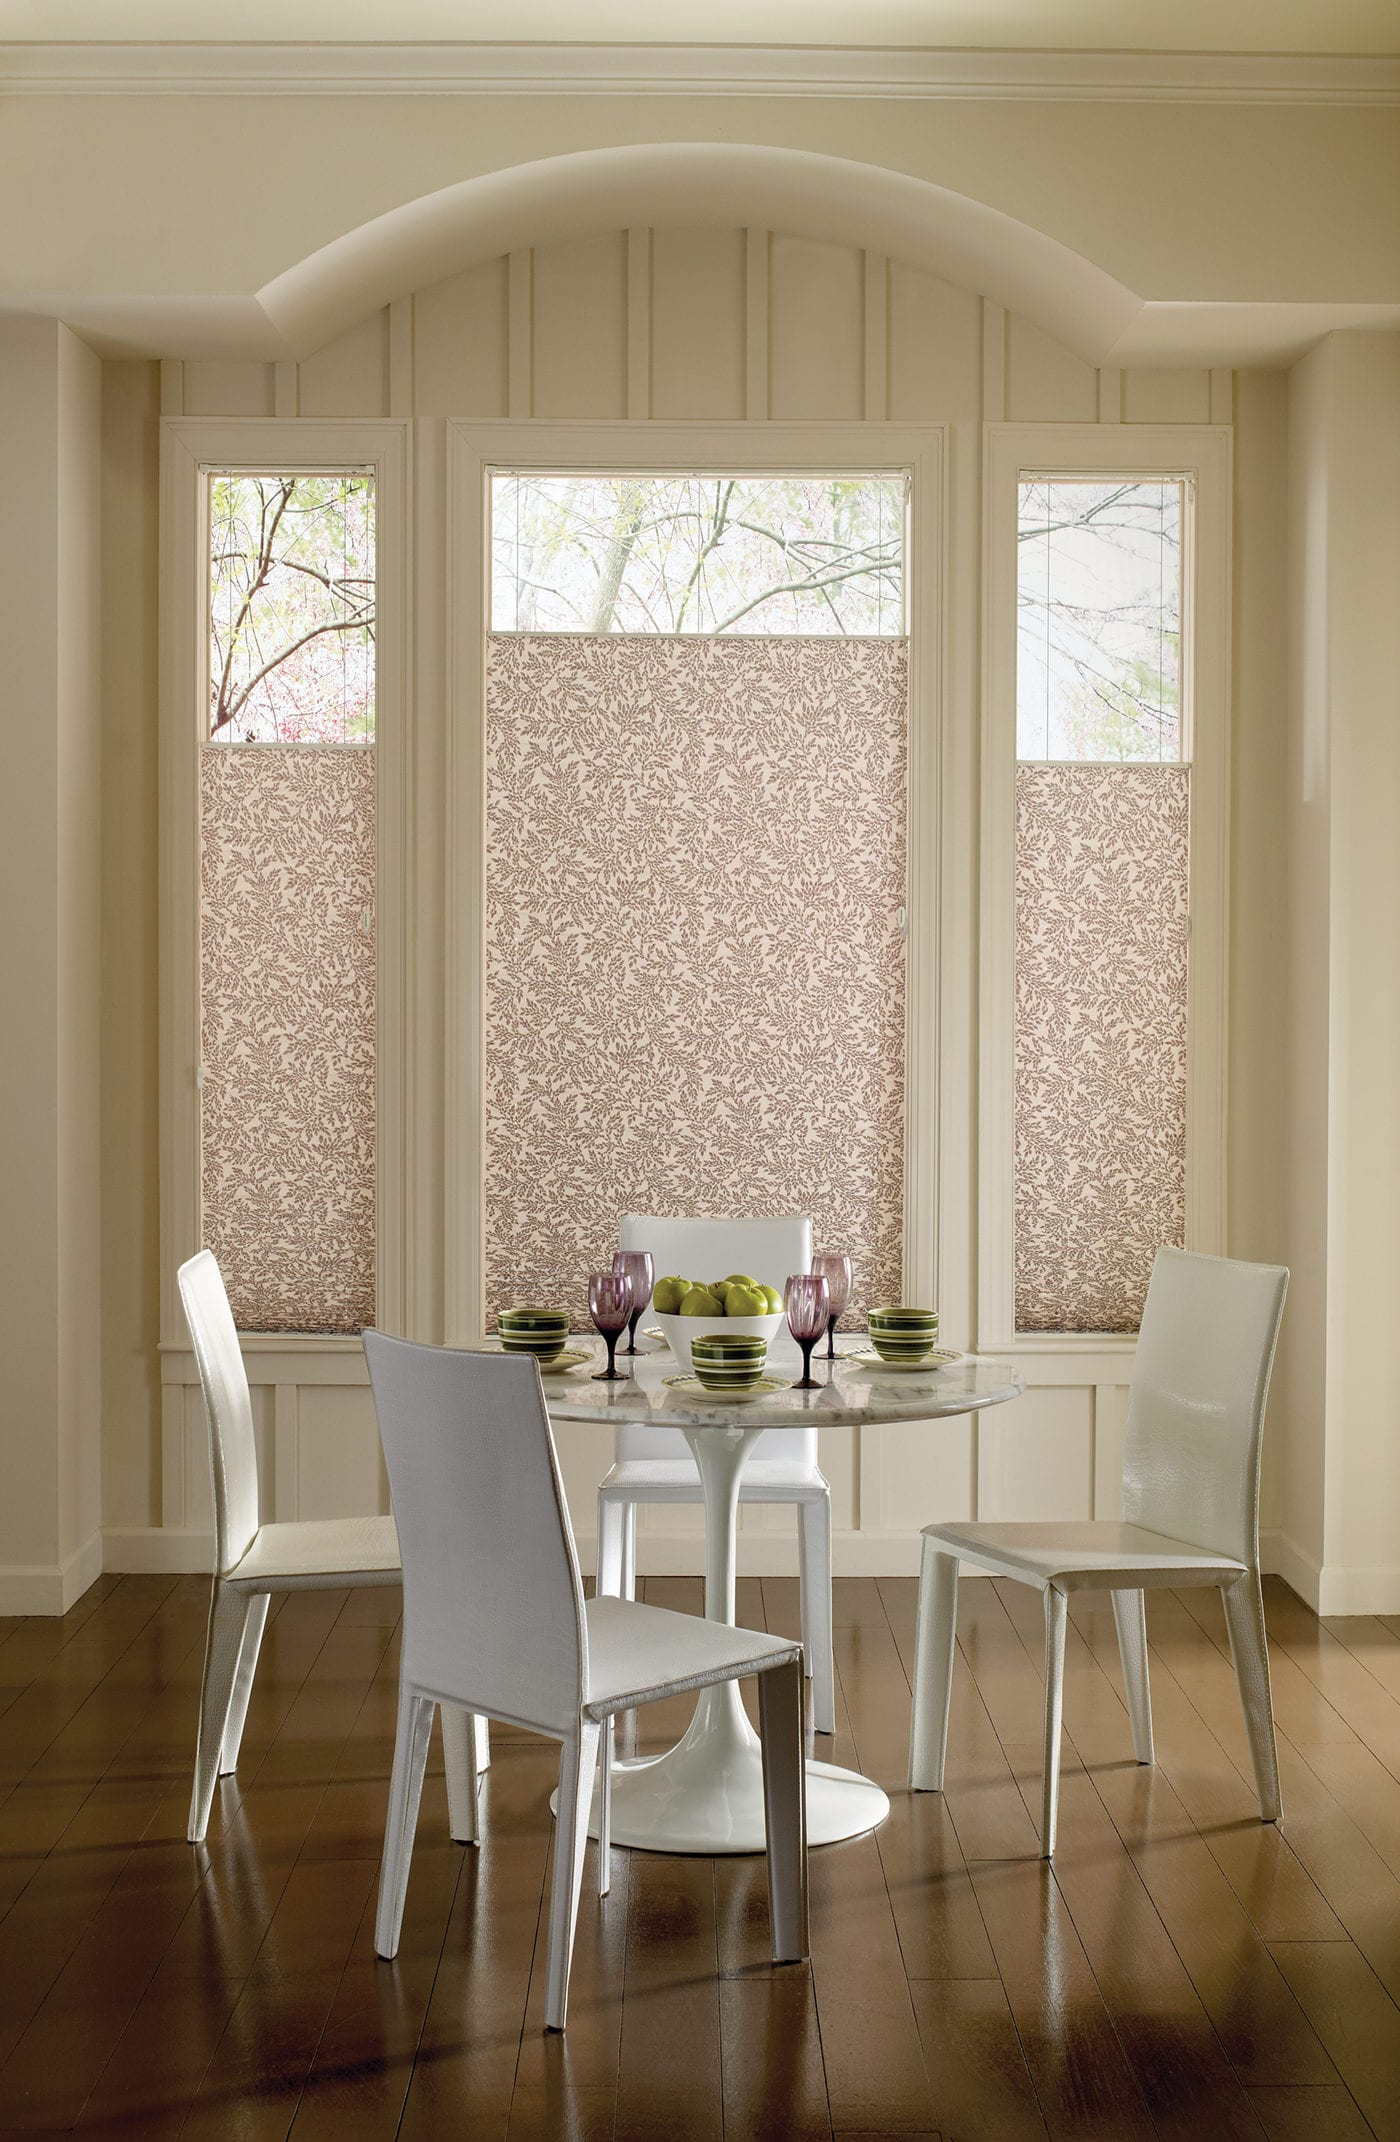 Botanicals Dining Room with Pleated Shades